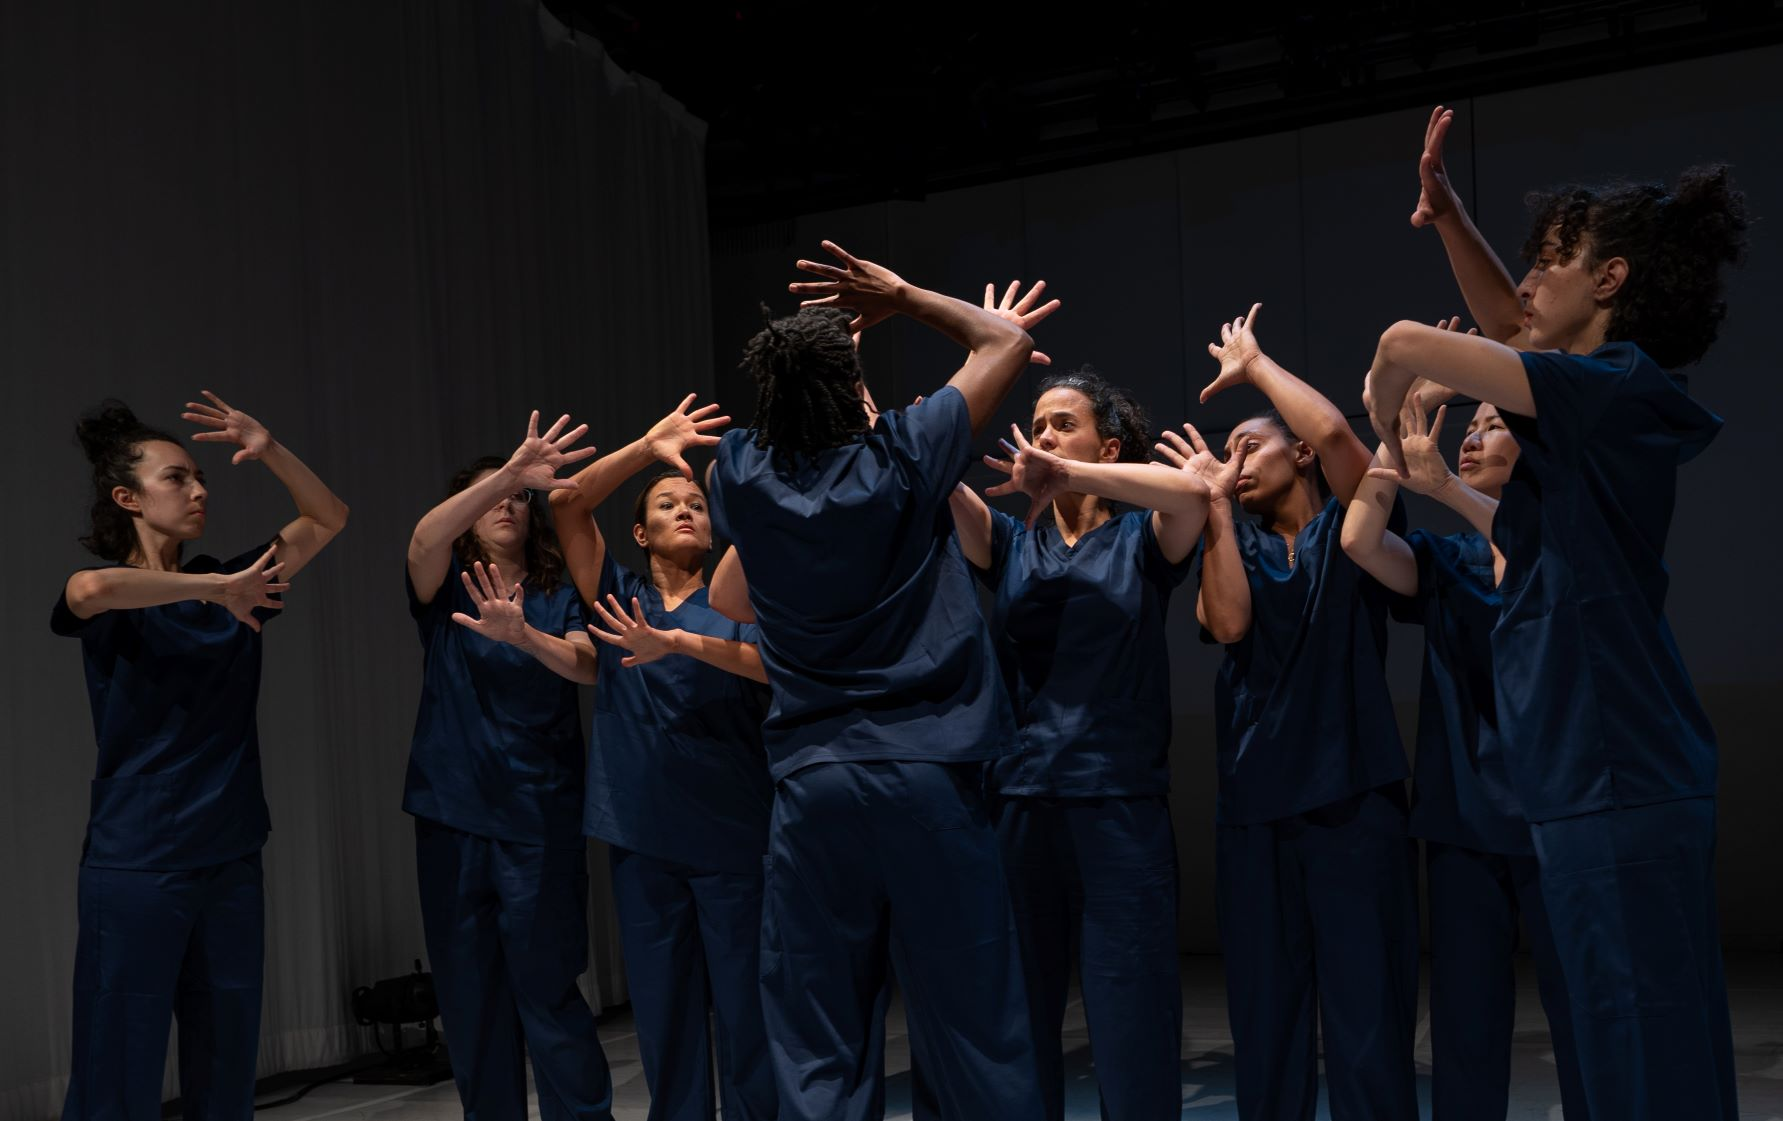 Hunter's Deaf's IMPRISONED explores what it means to be in a prison within a prison as a Deaf person moving through the criminal justice system. A group of performers in dark blue garments stretch their hands in front of their faces. The 2018 Urban Jazz Dance Company work navigates the tension between what Hunter called Deaf utopia and Deaf diaspora.